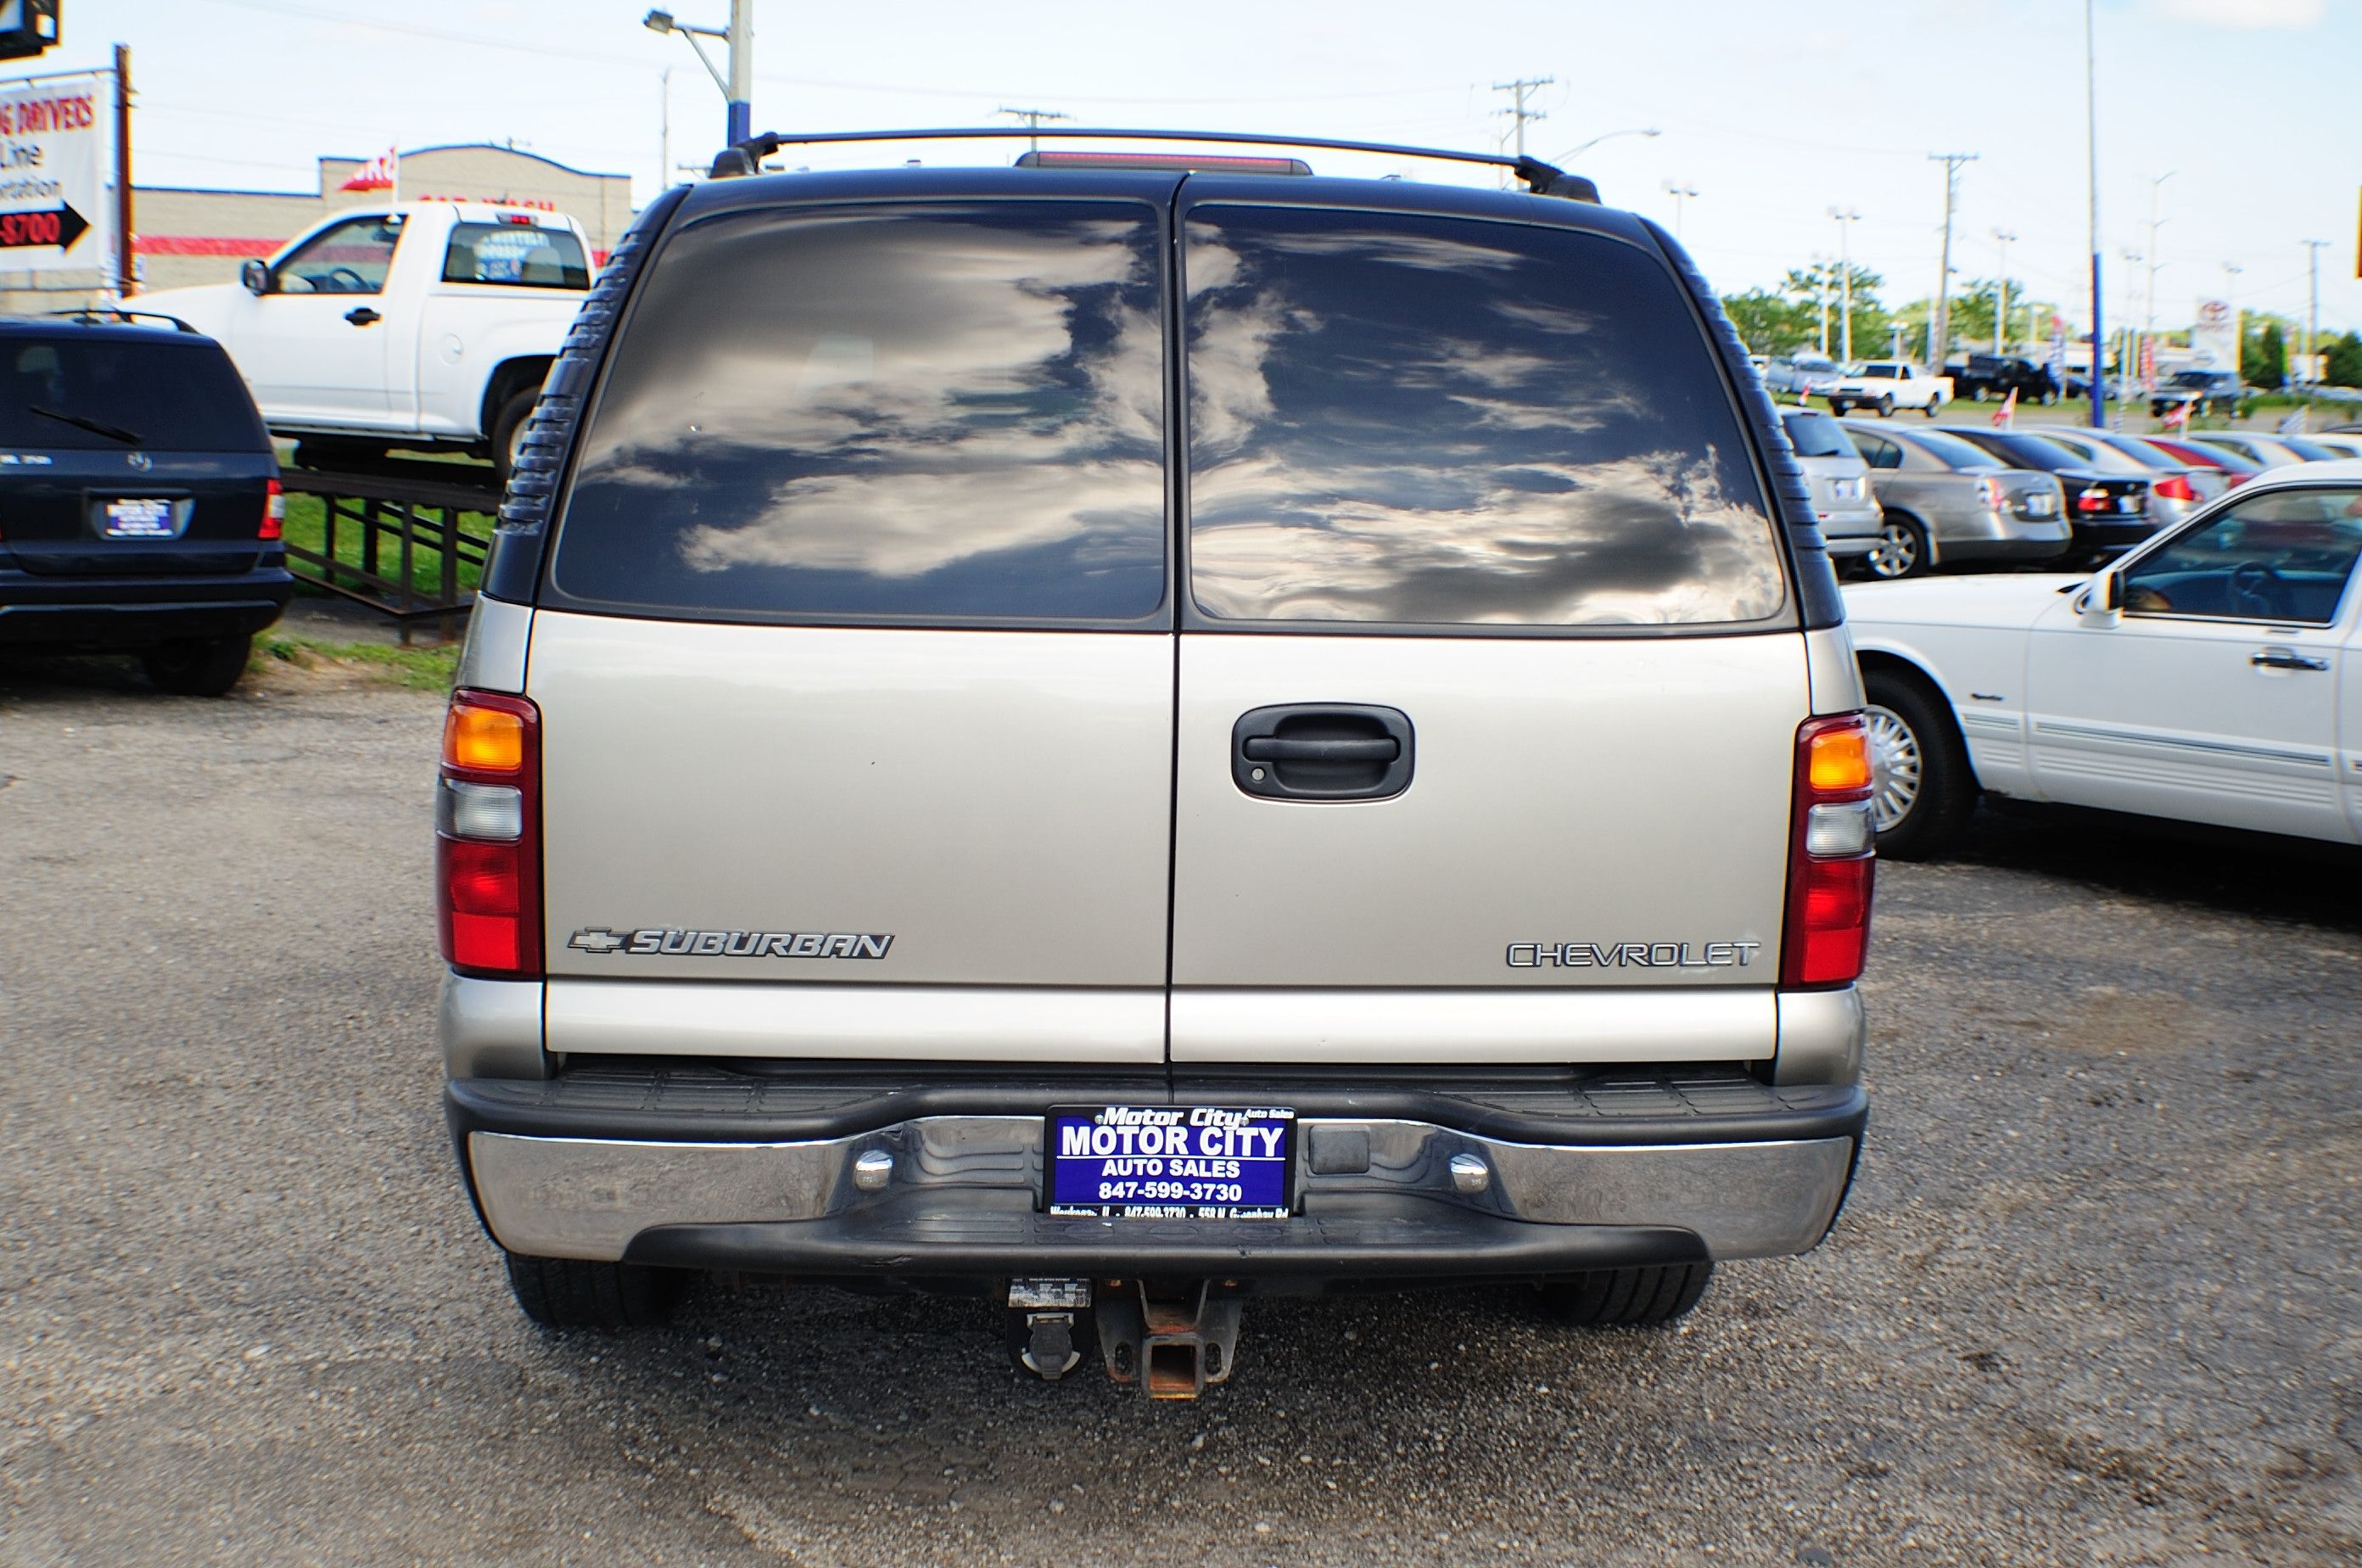 2001 Chevrolet Suburban LS Pewter 4x4 Tow SUV Used Car Sale Waukegan Kenosha